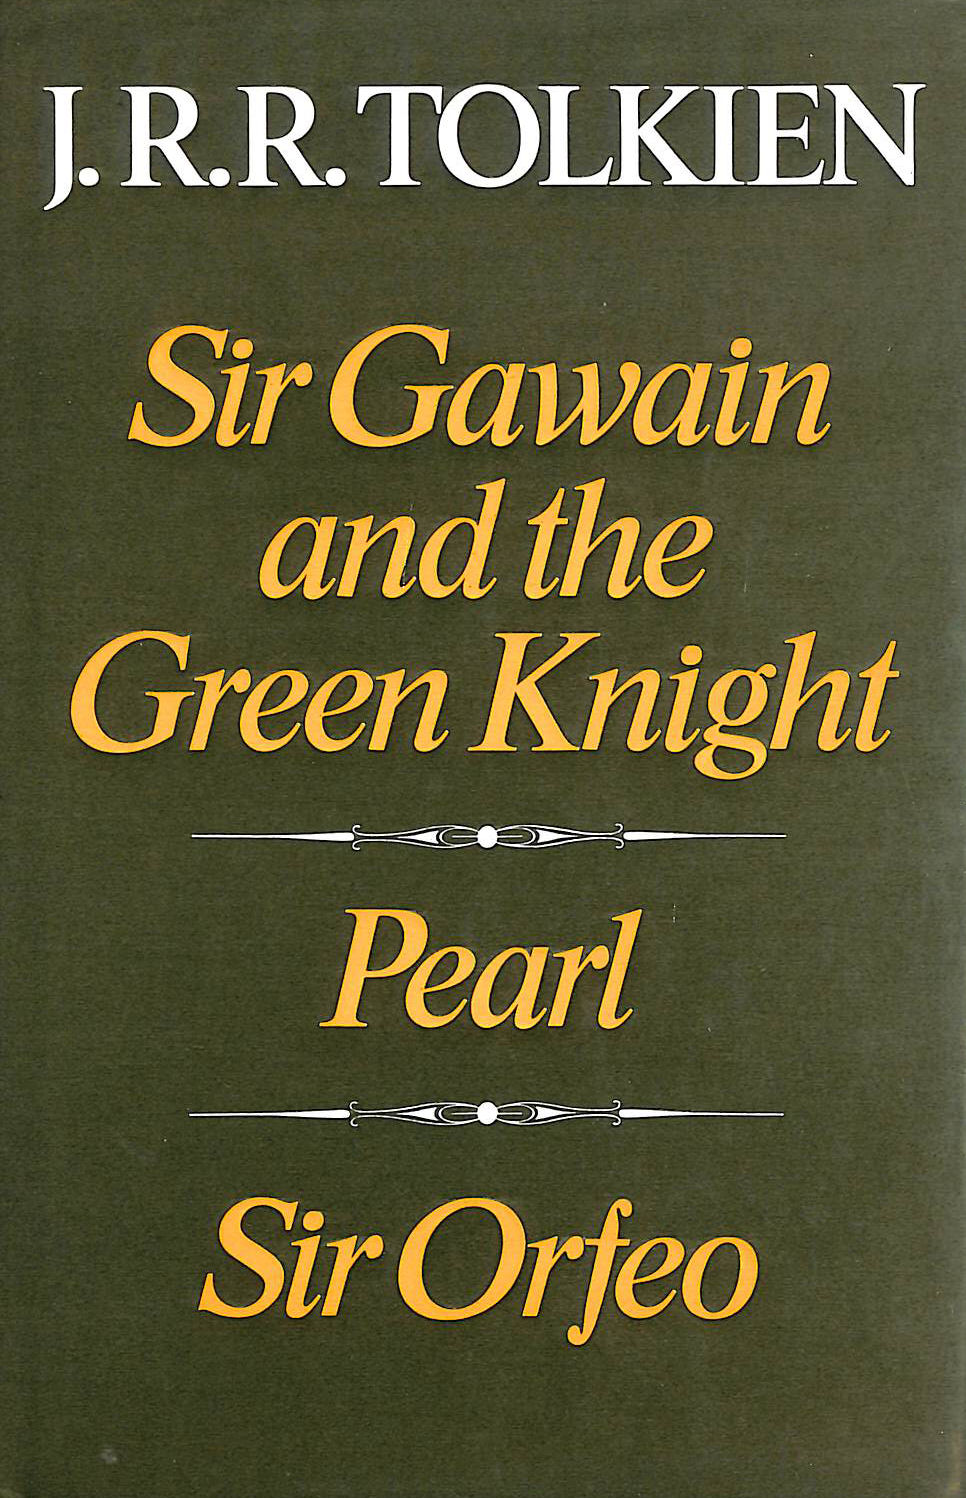 Image for Sir Gawain and the Green Knight & Pearl & Sir Orfeo